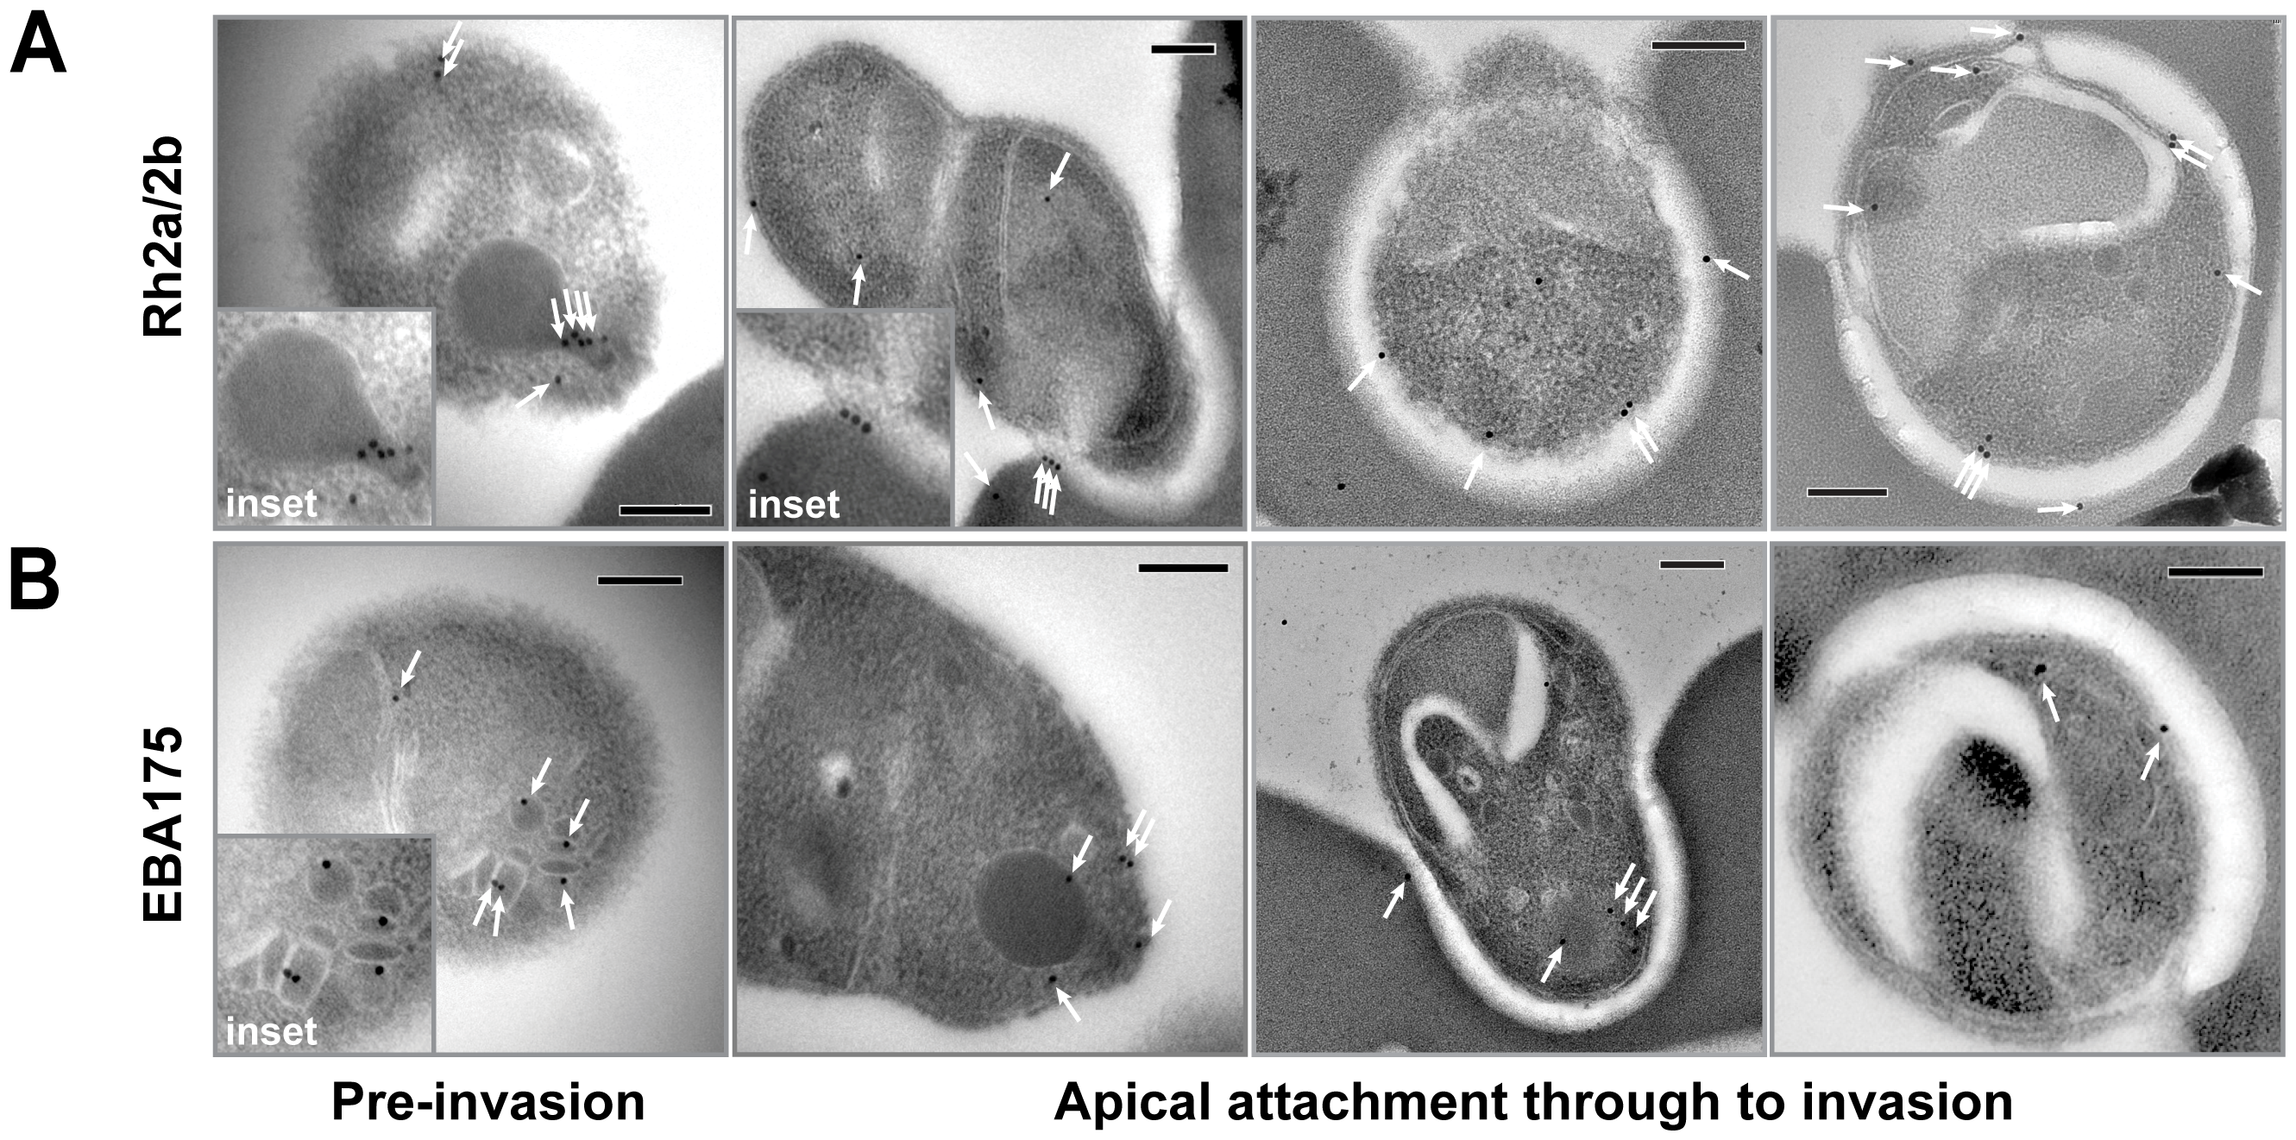 Immuno-electron microscopy localisation of PfRh2a and PfRh2b during merozoite invasion of human erythrocytes.